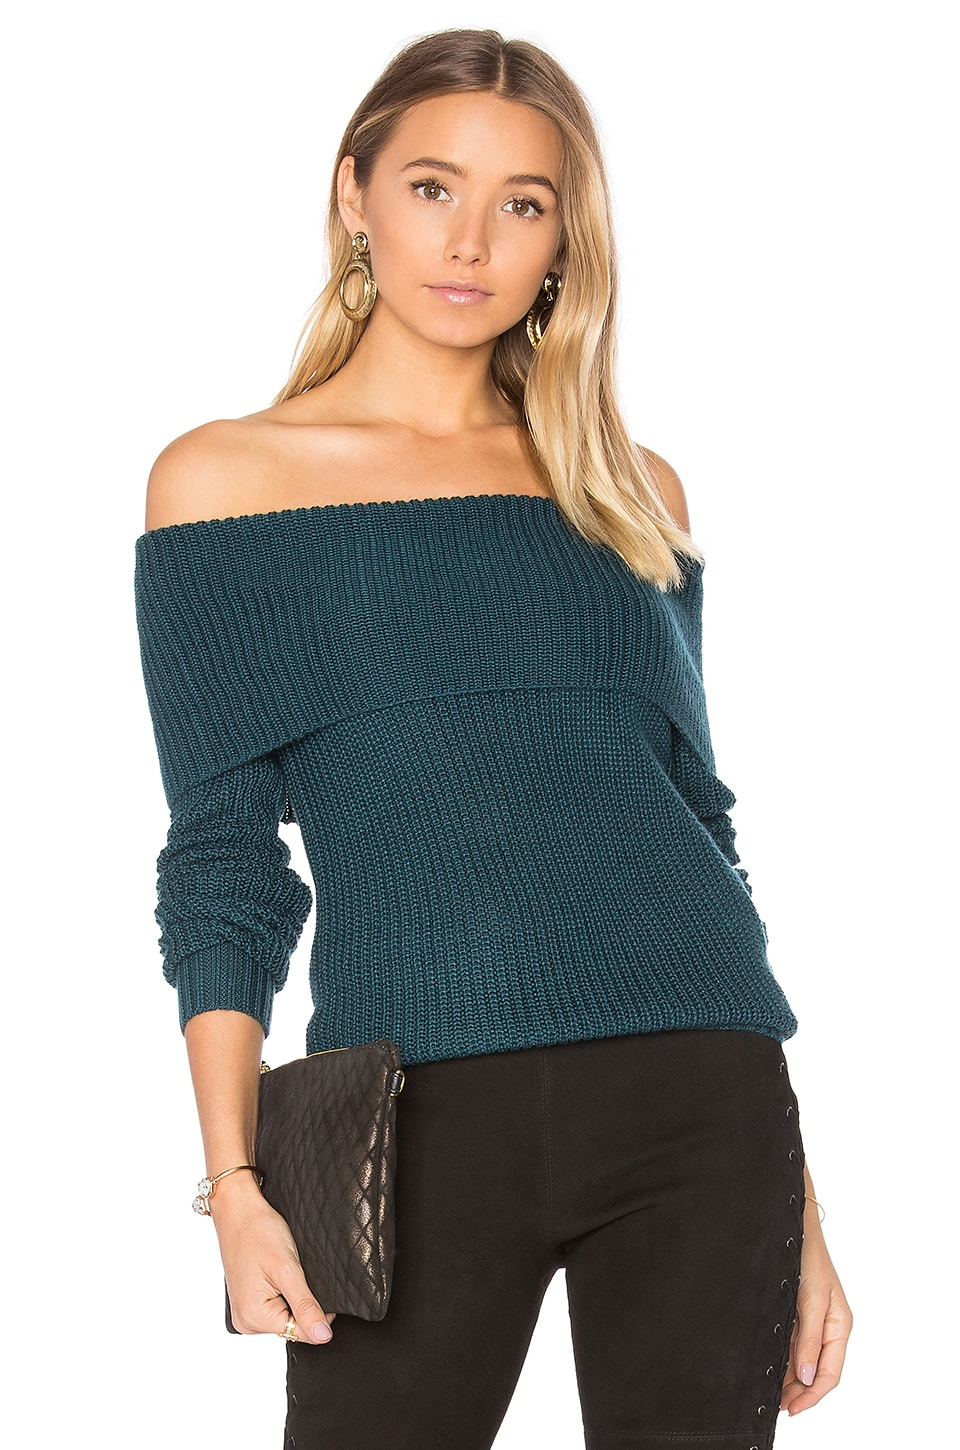 Lovers + Friends x REVOLVE Luna Sweater in Jade